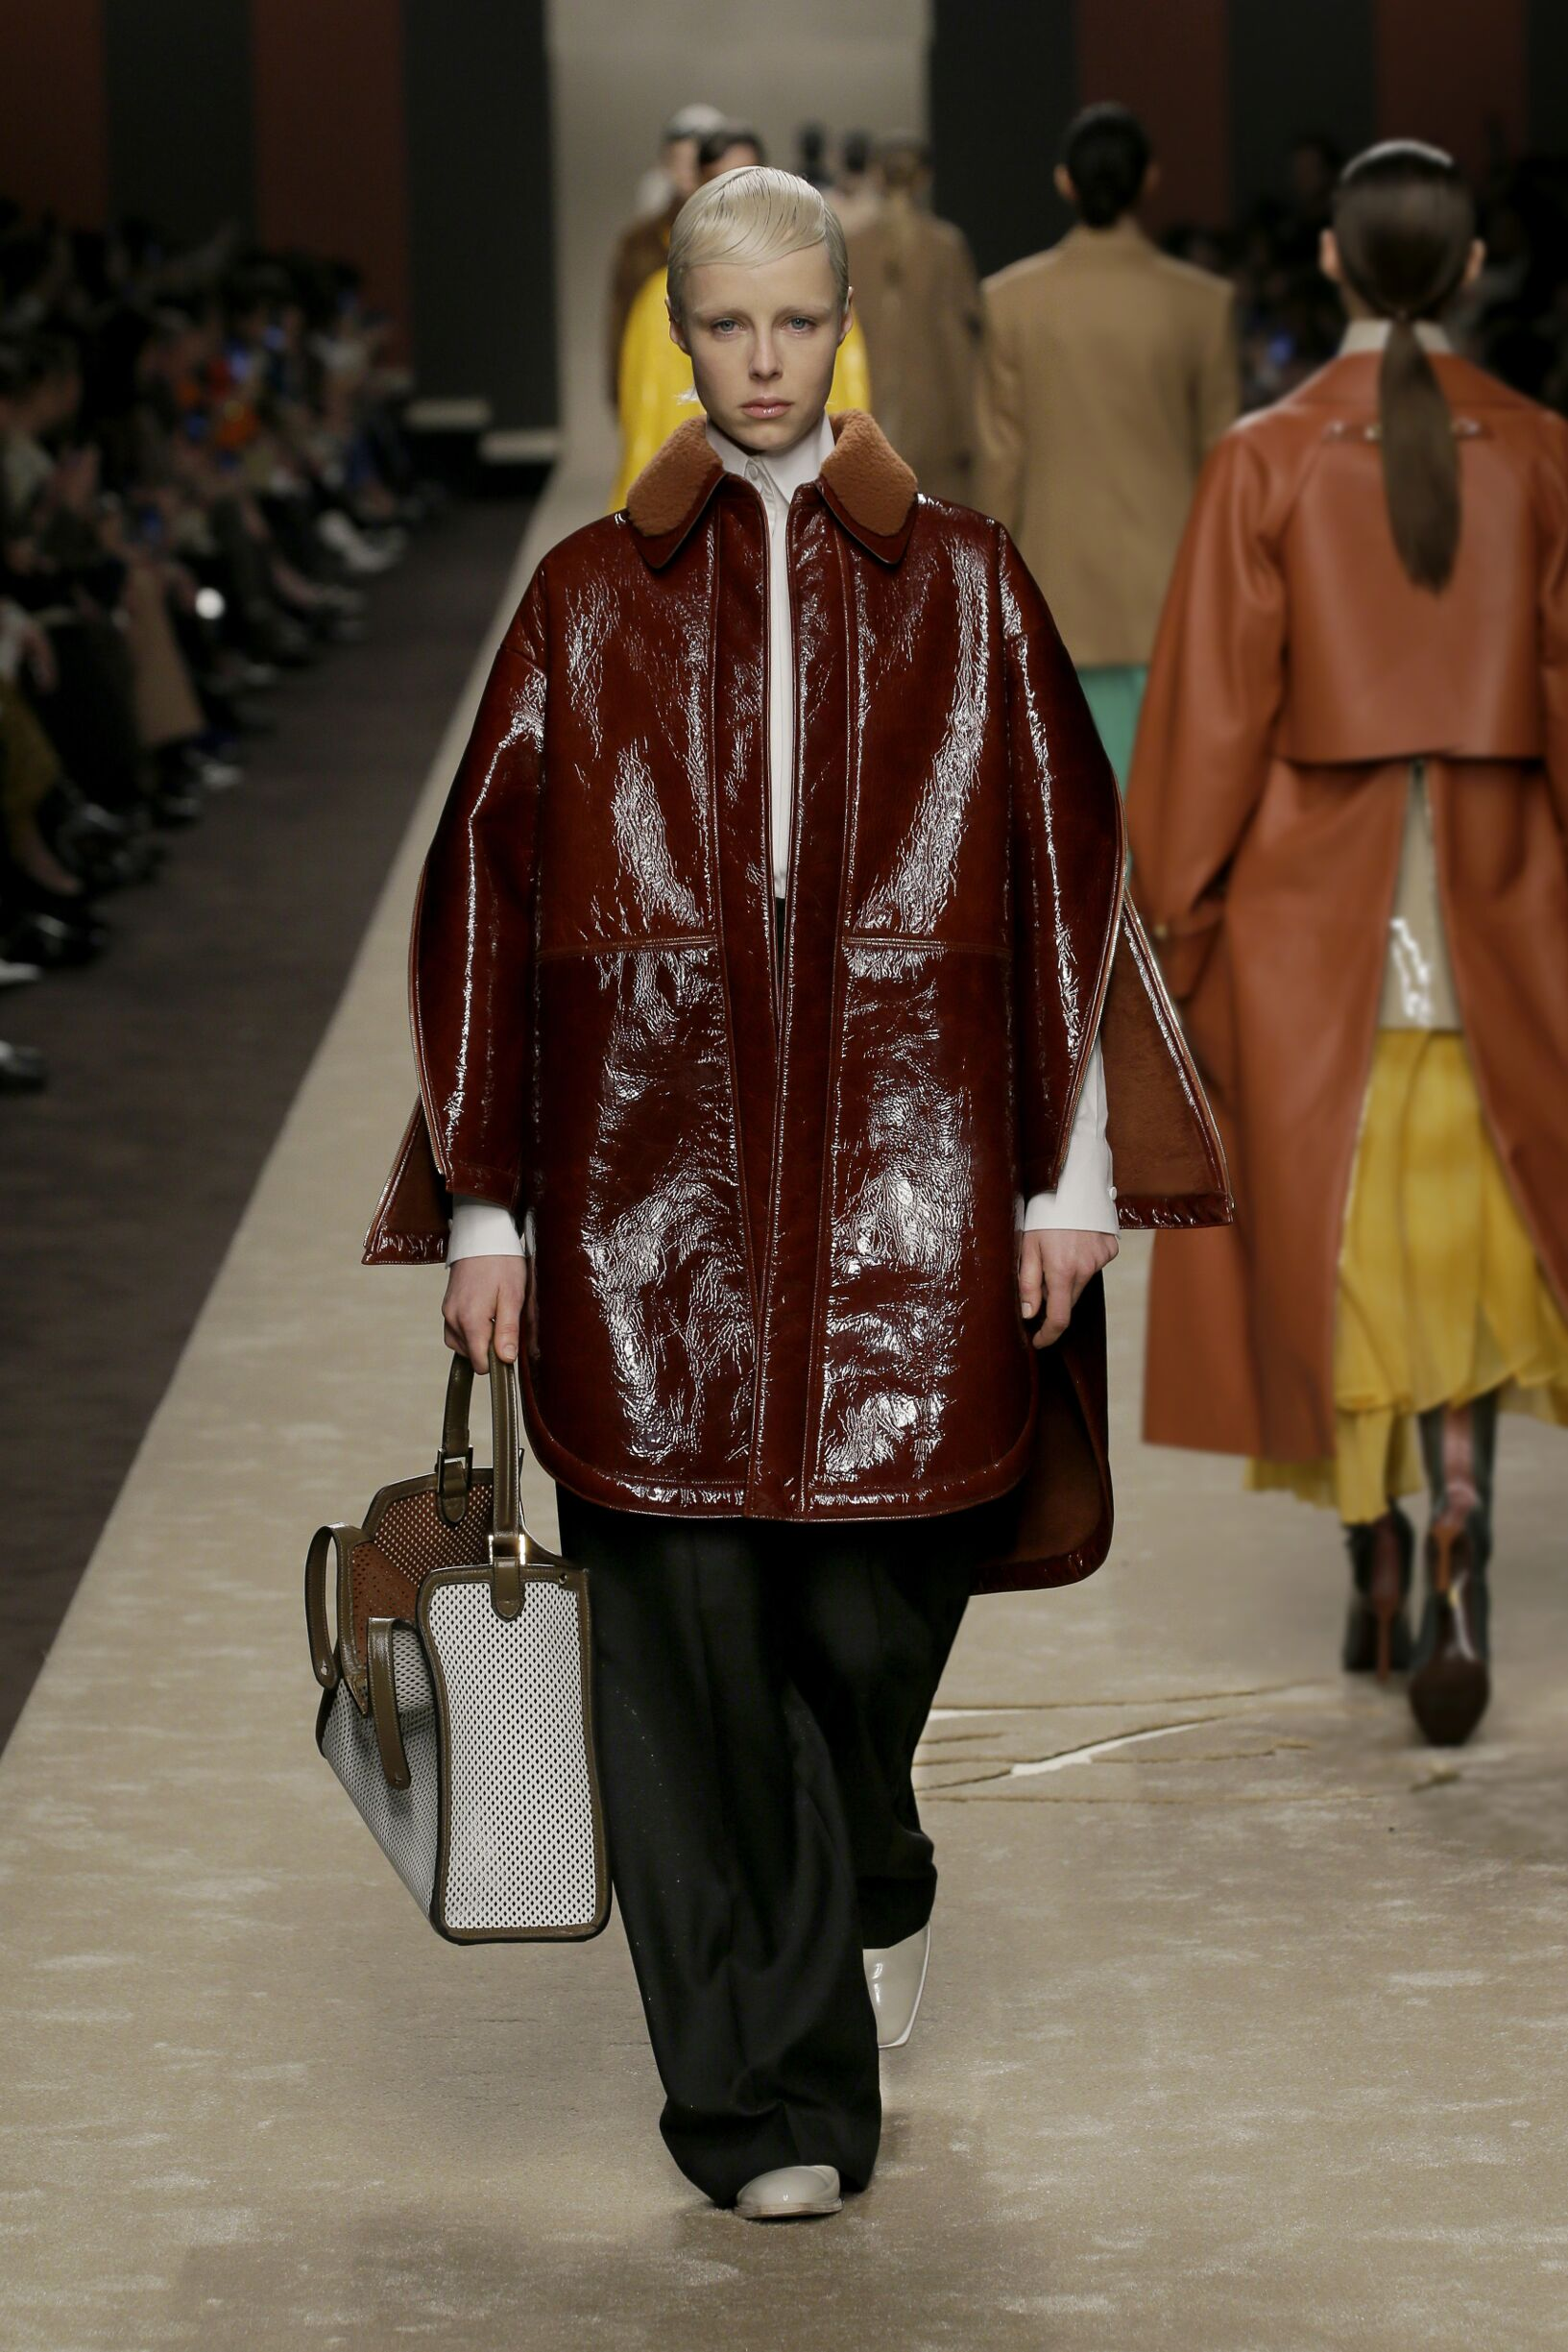 Fendi FW 2019 Womenswear